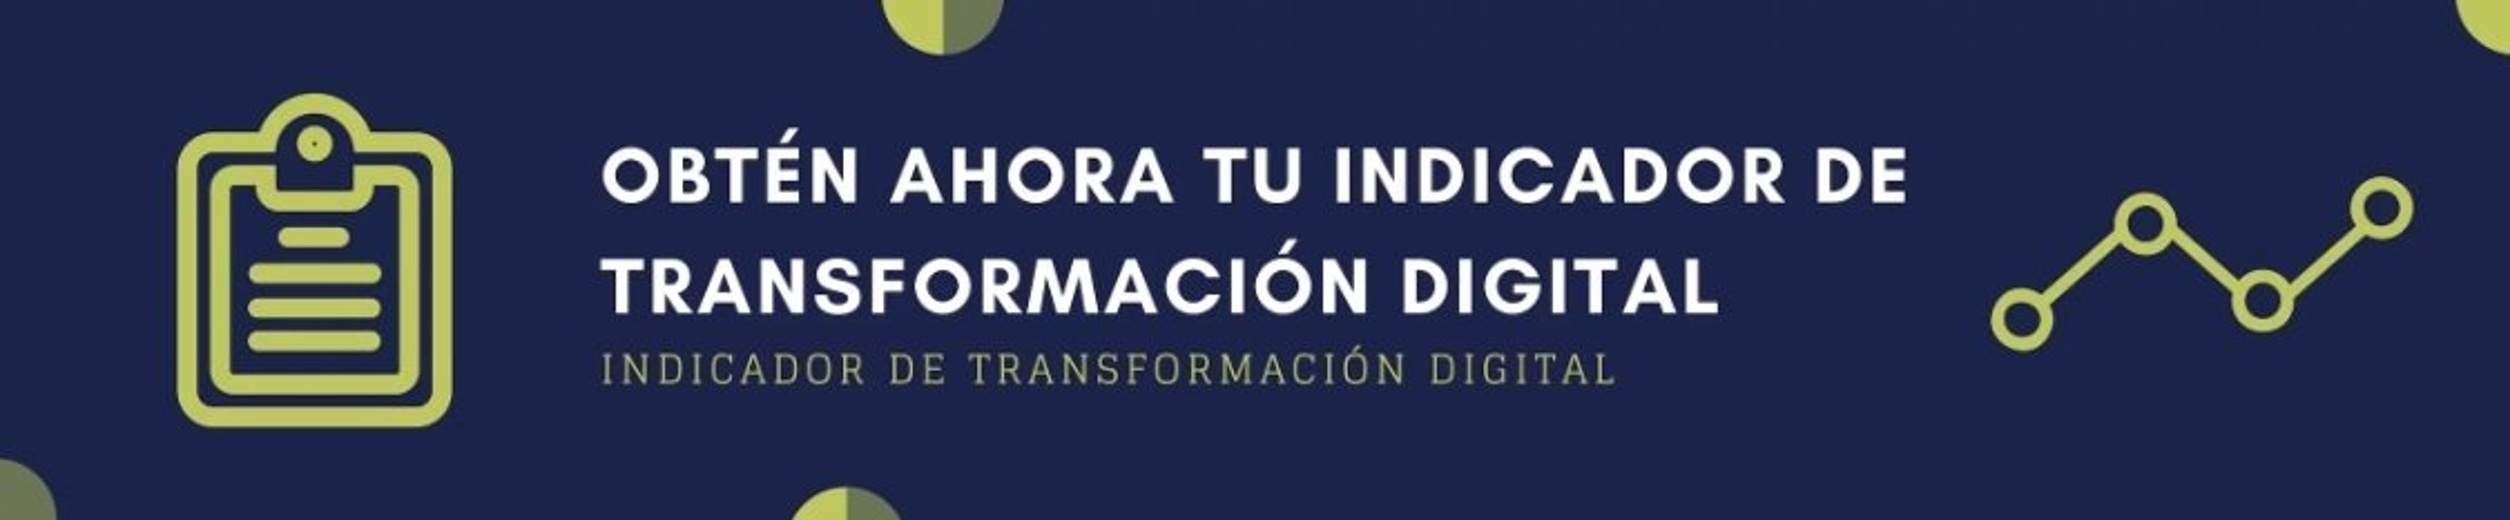 Indicador de transformación digital